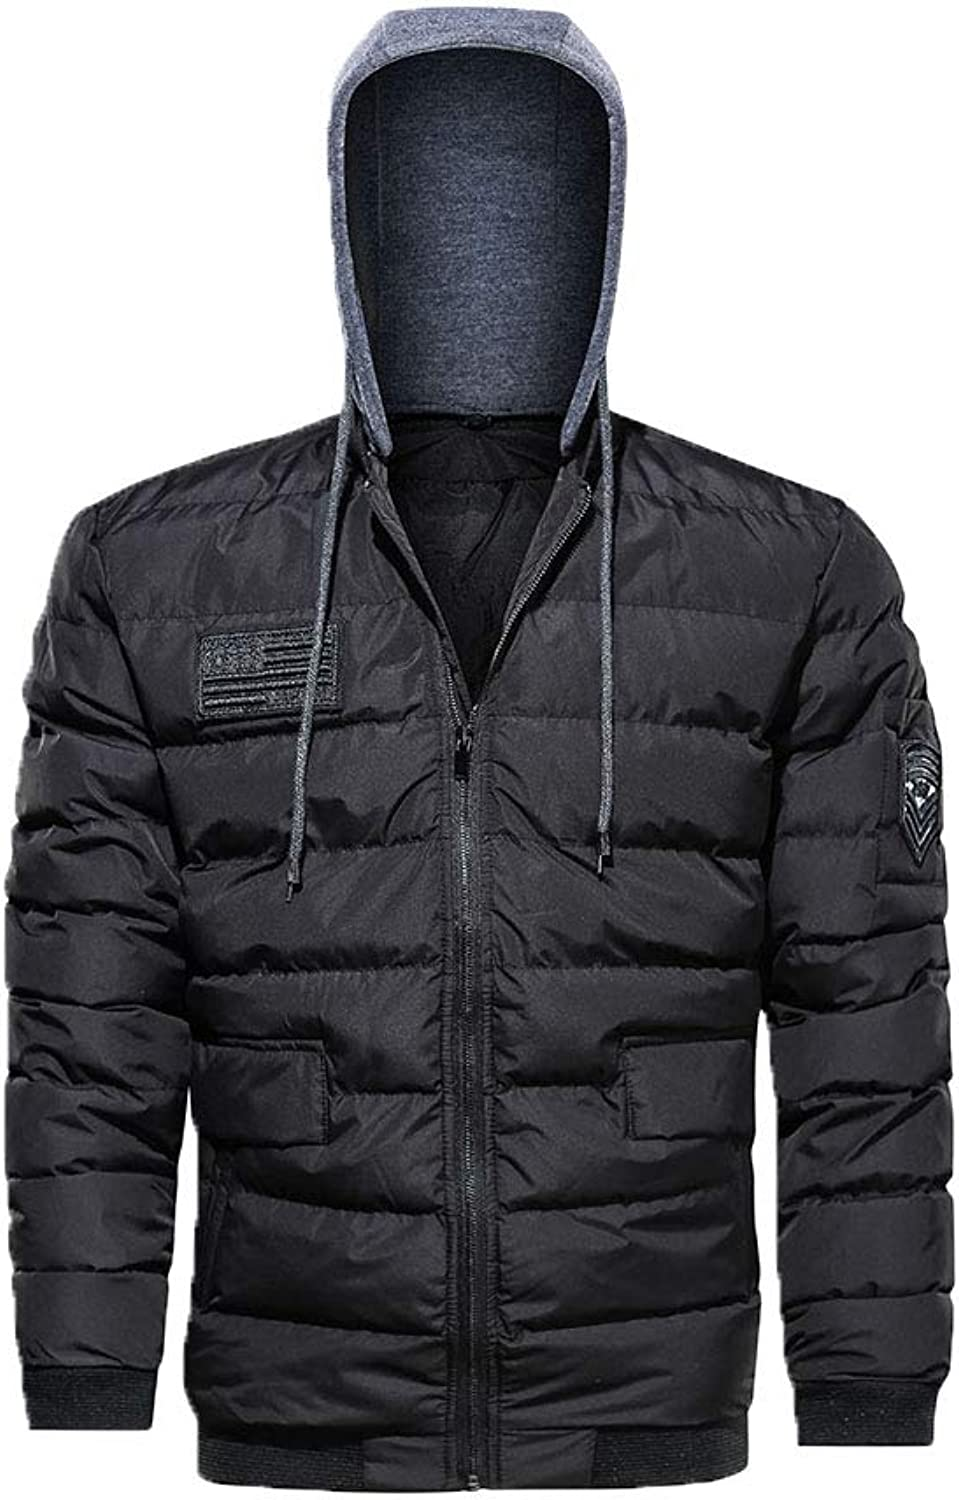 OMAS Men's Winter Warmer Thicken Puffer Hooded Jacket Removable Hooded Coat